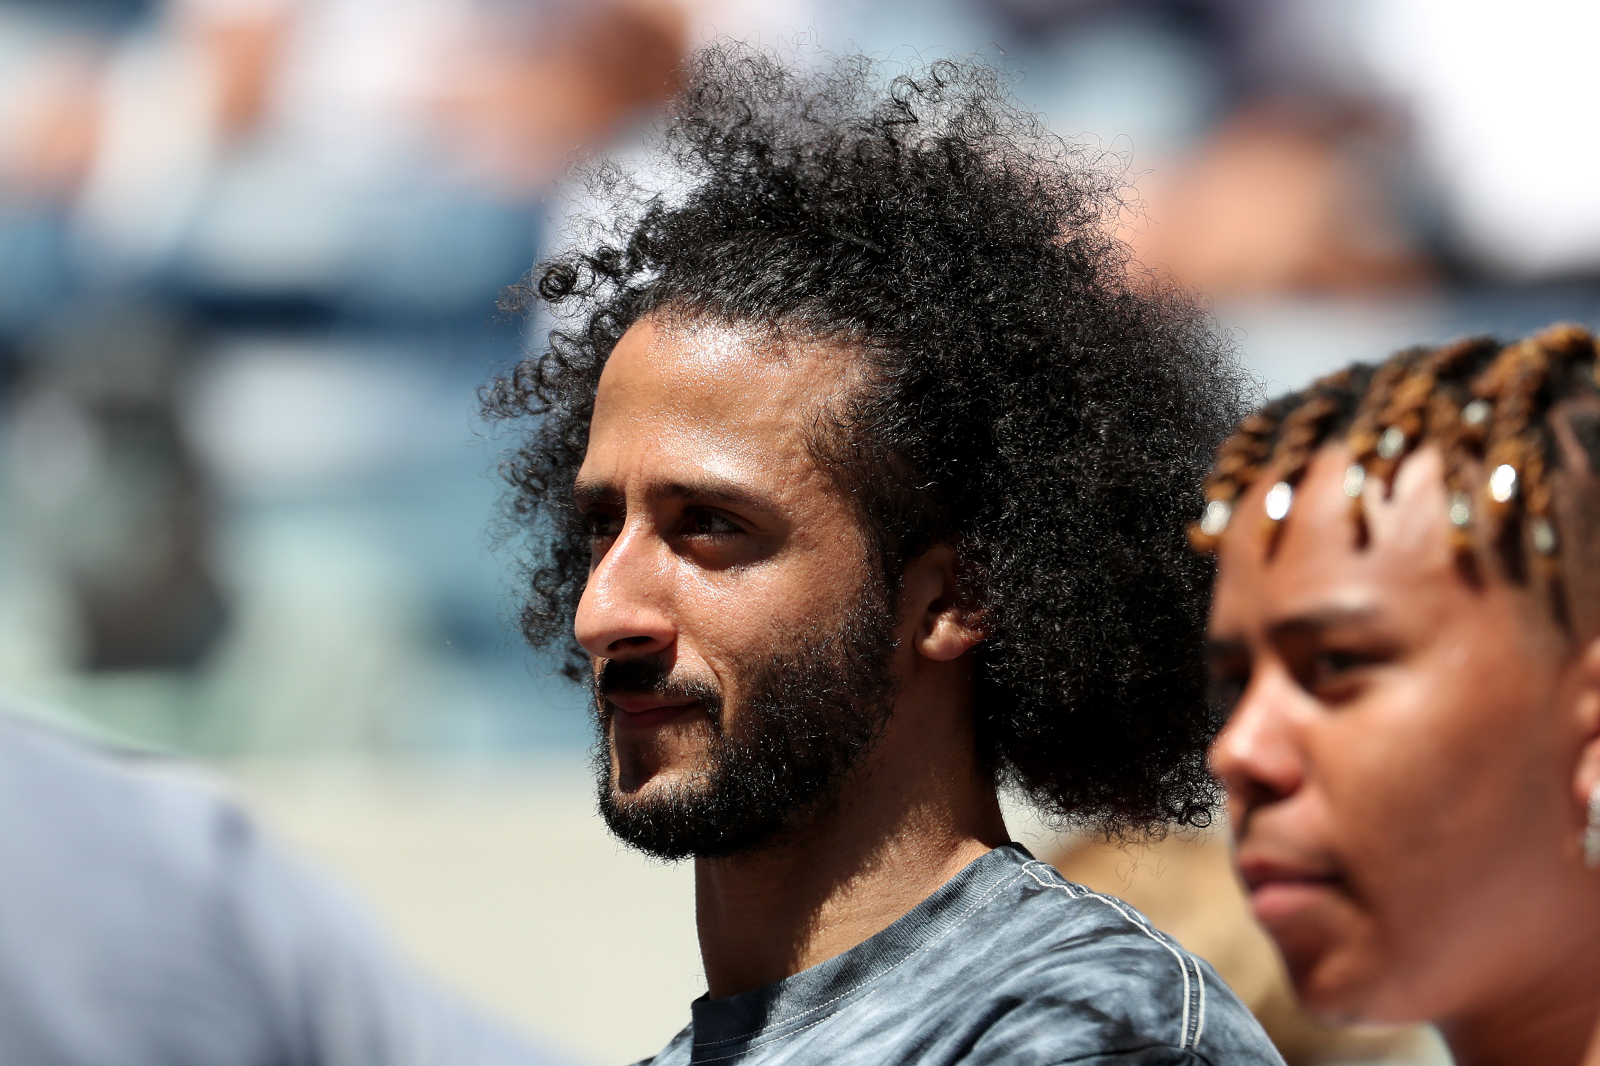 Colin Kaepernick and LeBron James are both fighting for racial equality. Kaepernick just recently showed his appreciation for James.